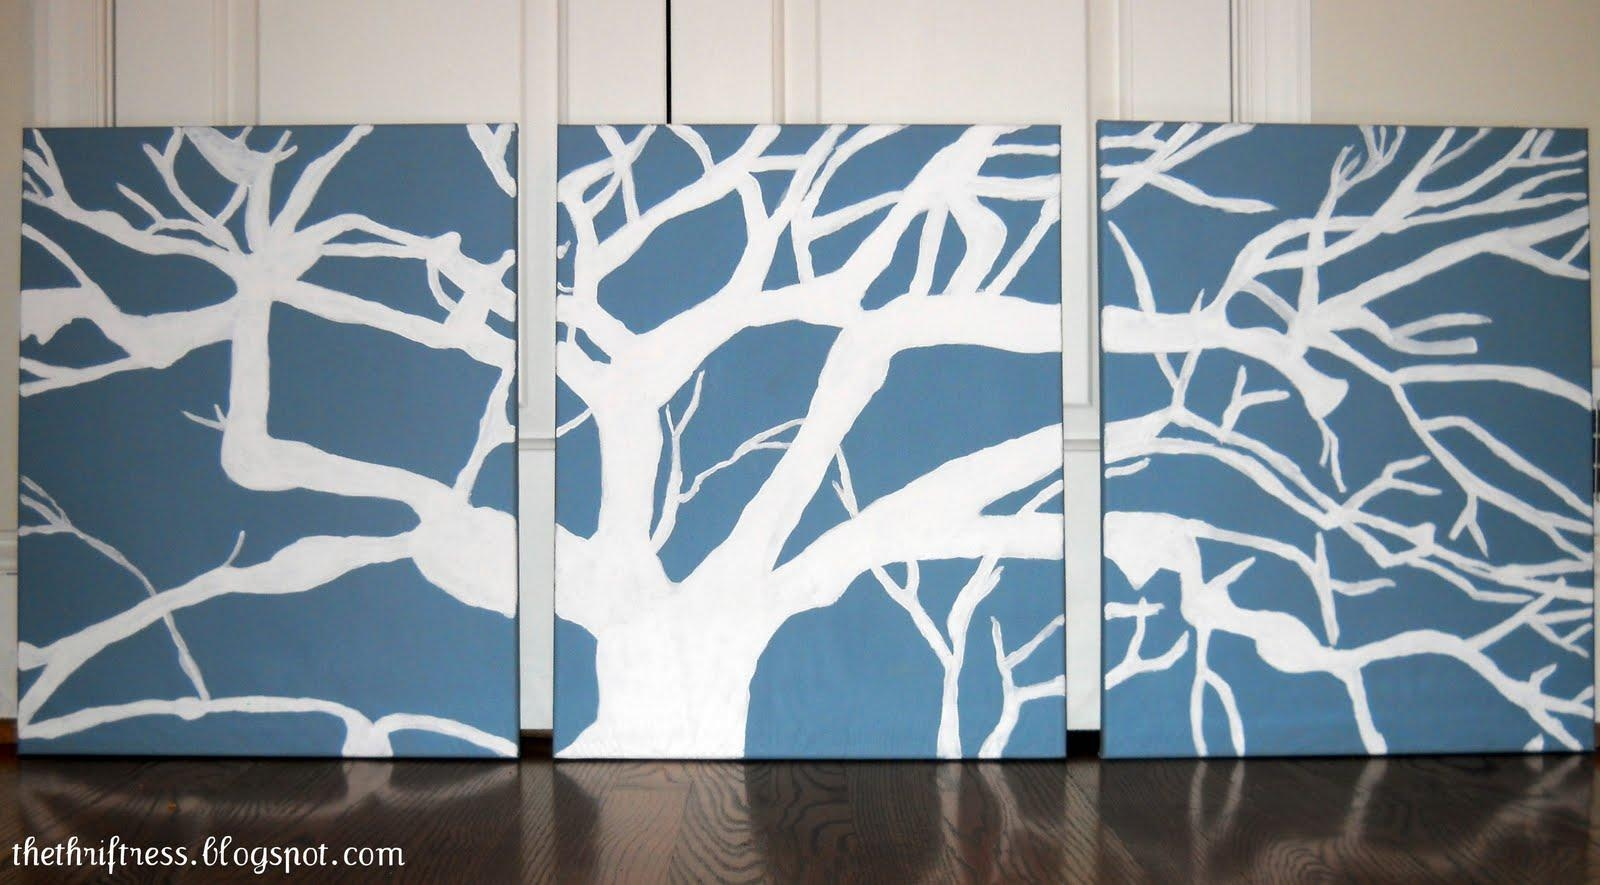 Wall Art Designs: 10 Easy Diy Homemade Wall Art You Will Fall In Inside Homemade Wall Art (View 8 of 20)